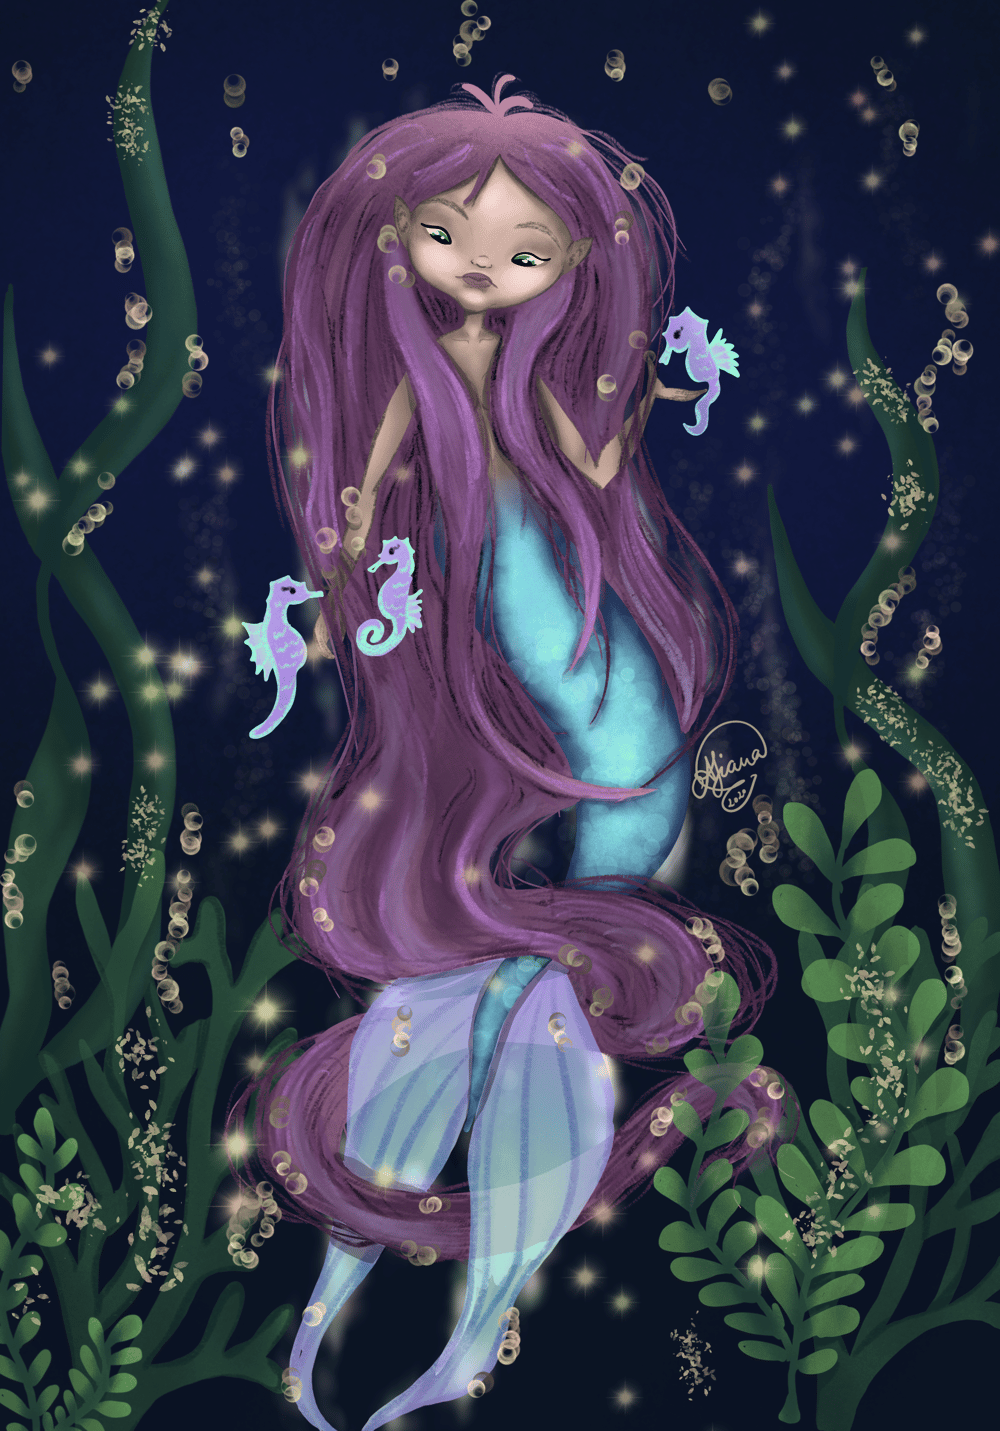 Little mermaid - image 1 - student project